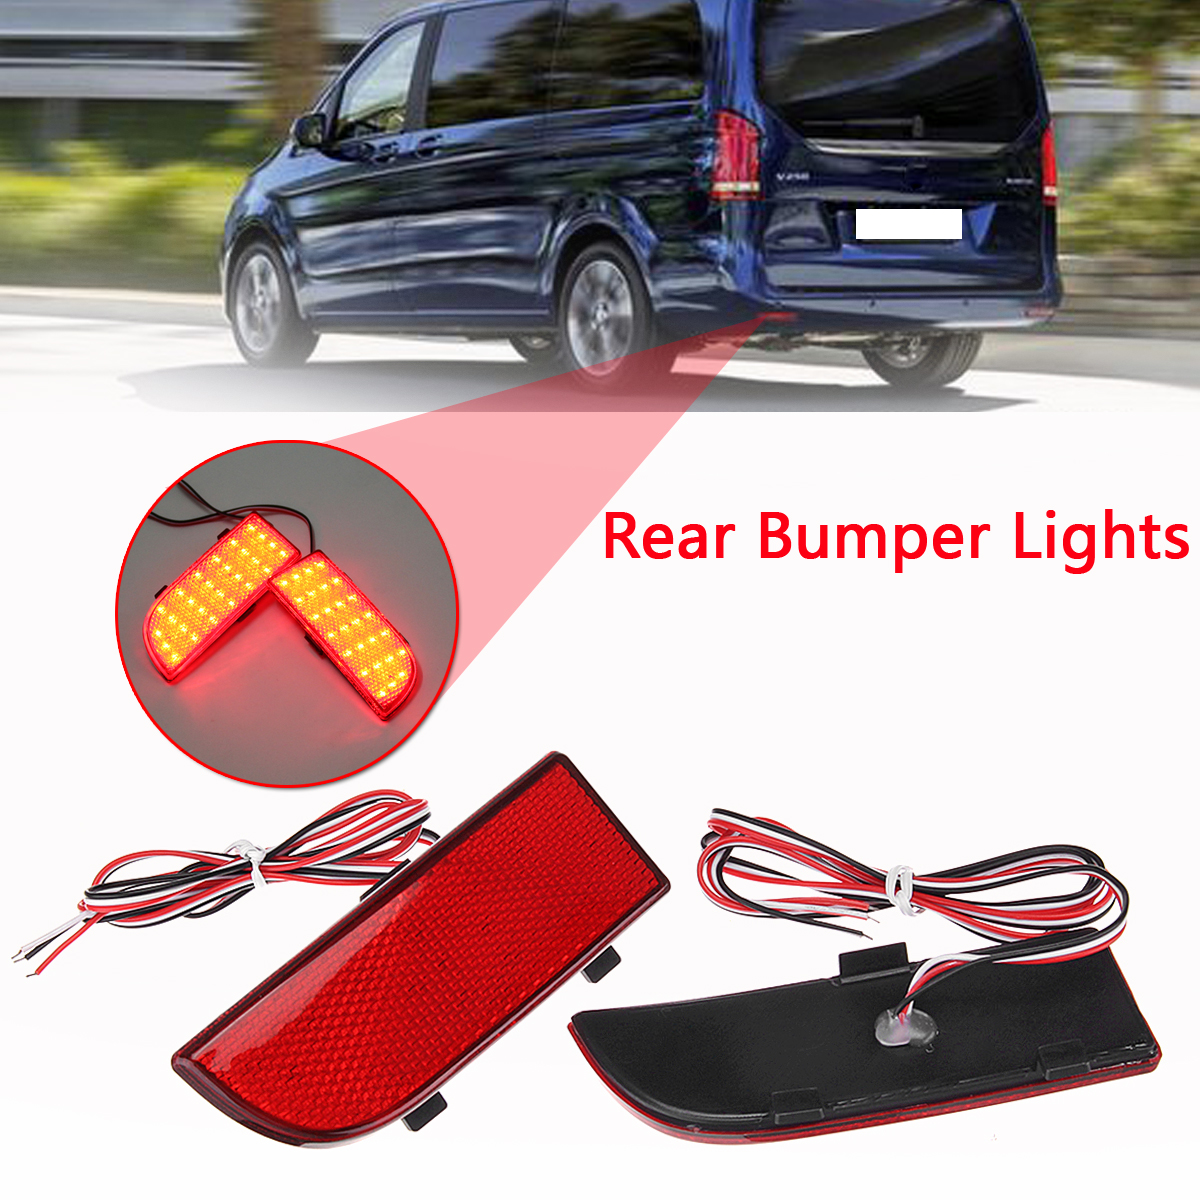 US $16 74 23% OFF|2Pcs LED Rear Bumper Reflector Light Brake Fog Tail Light  Foror Mercedes Benz vito viano W639 2003 2014-in Car Light Accessories